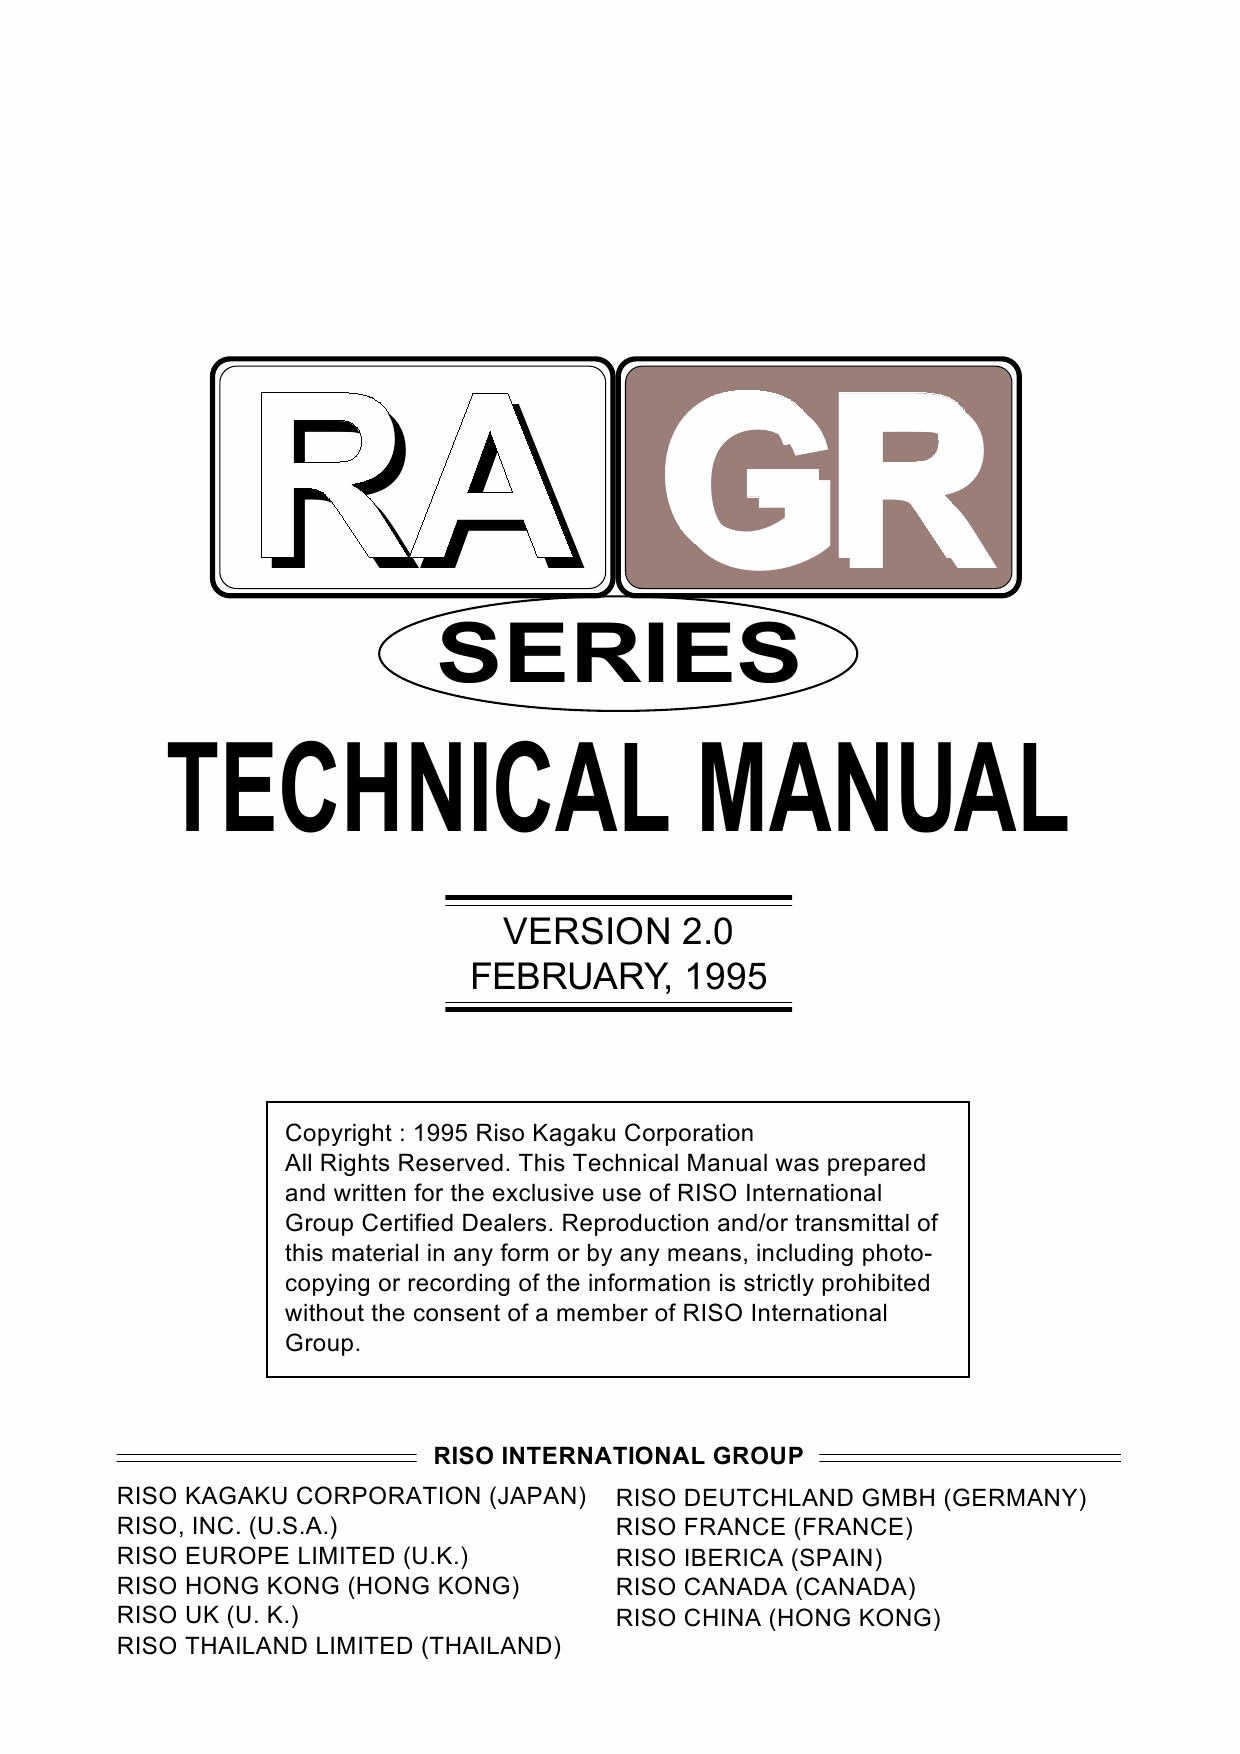 RISO RA 4200 4900 5900 GR 3750 2750 2710 1750 1700 TECHNICAL Service Manual-1